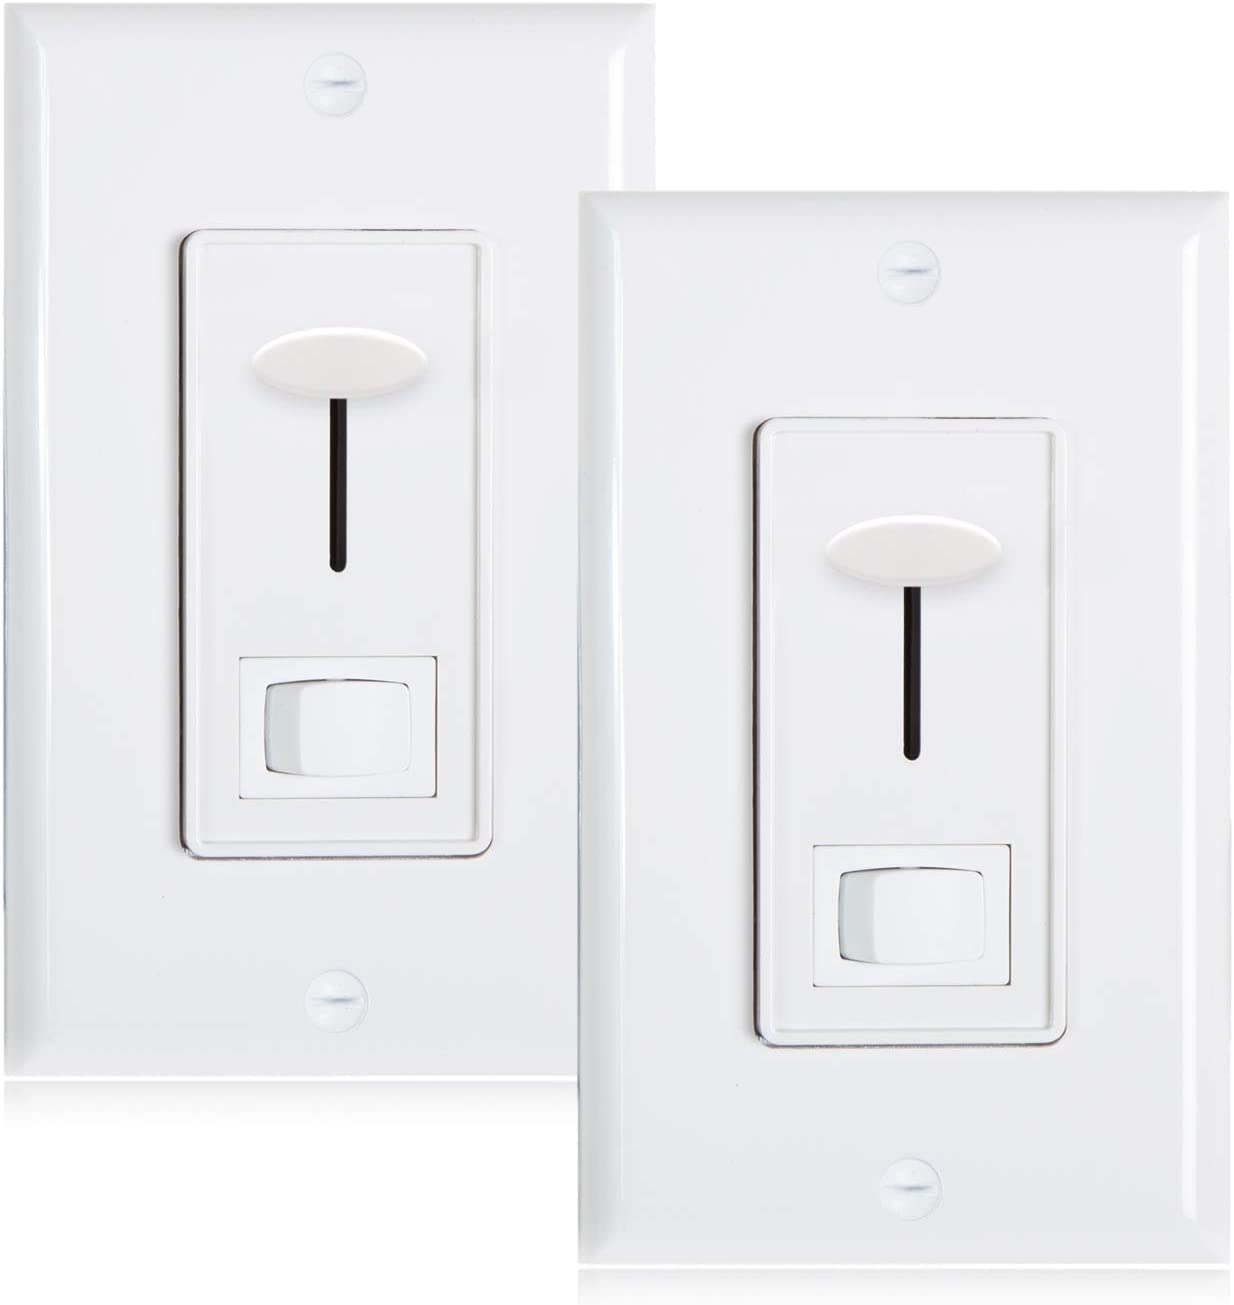 Maxxima 3-Way/Single Pole Dimmer Electrical light Switch 600 Watt max, LED Compatible, Wall Plate Included (2 Pack) - -